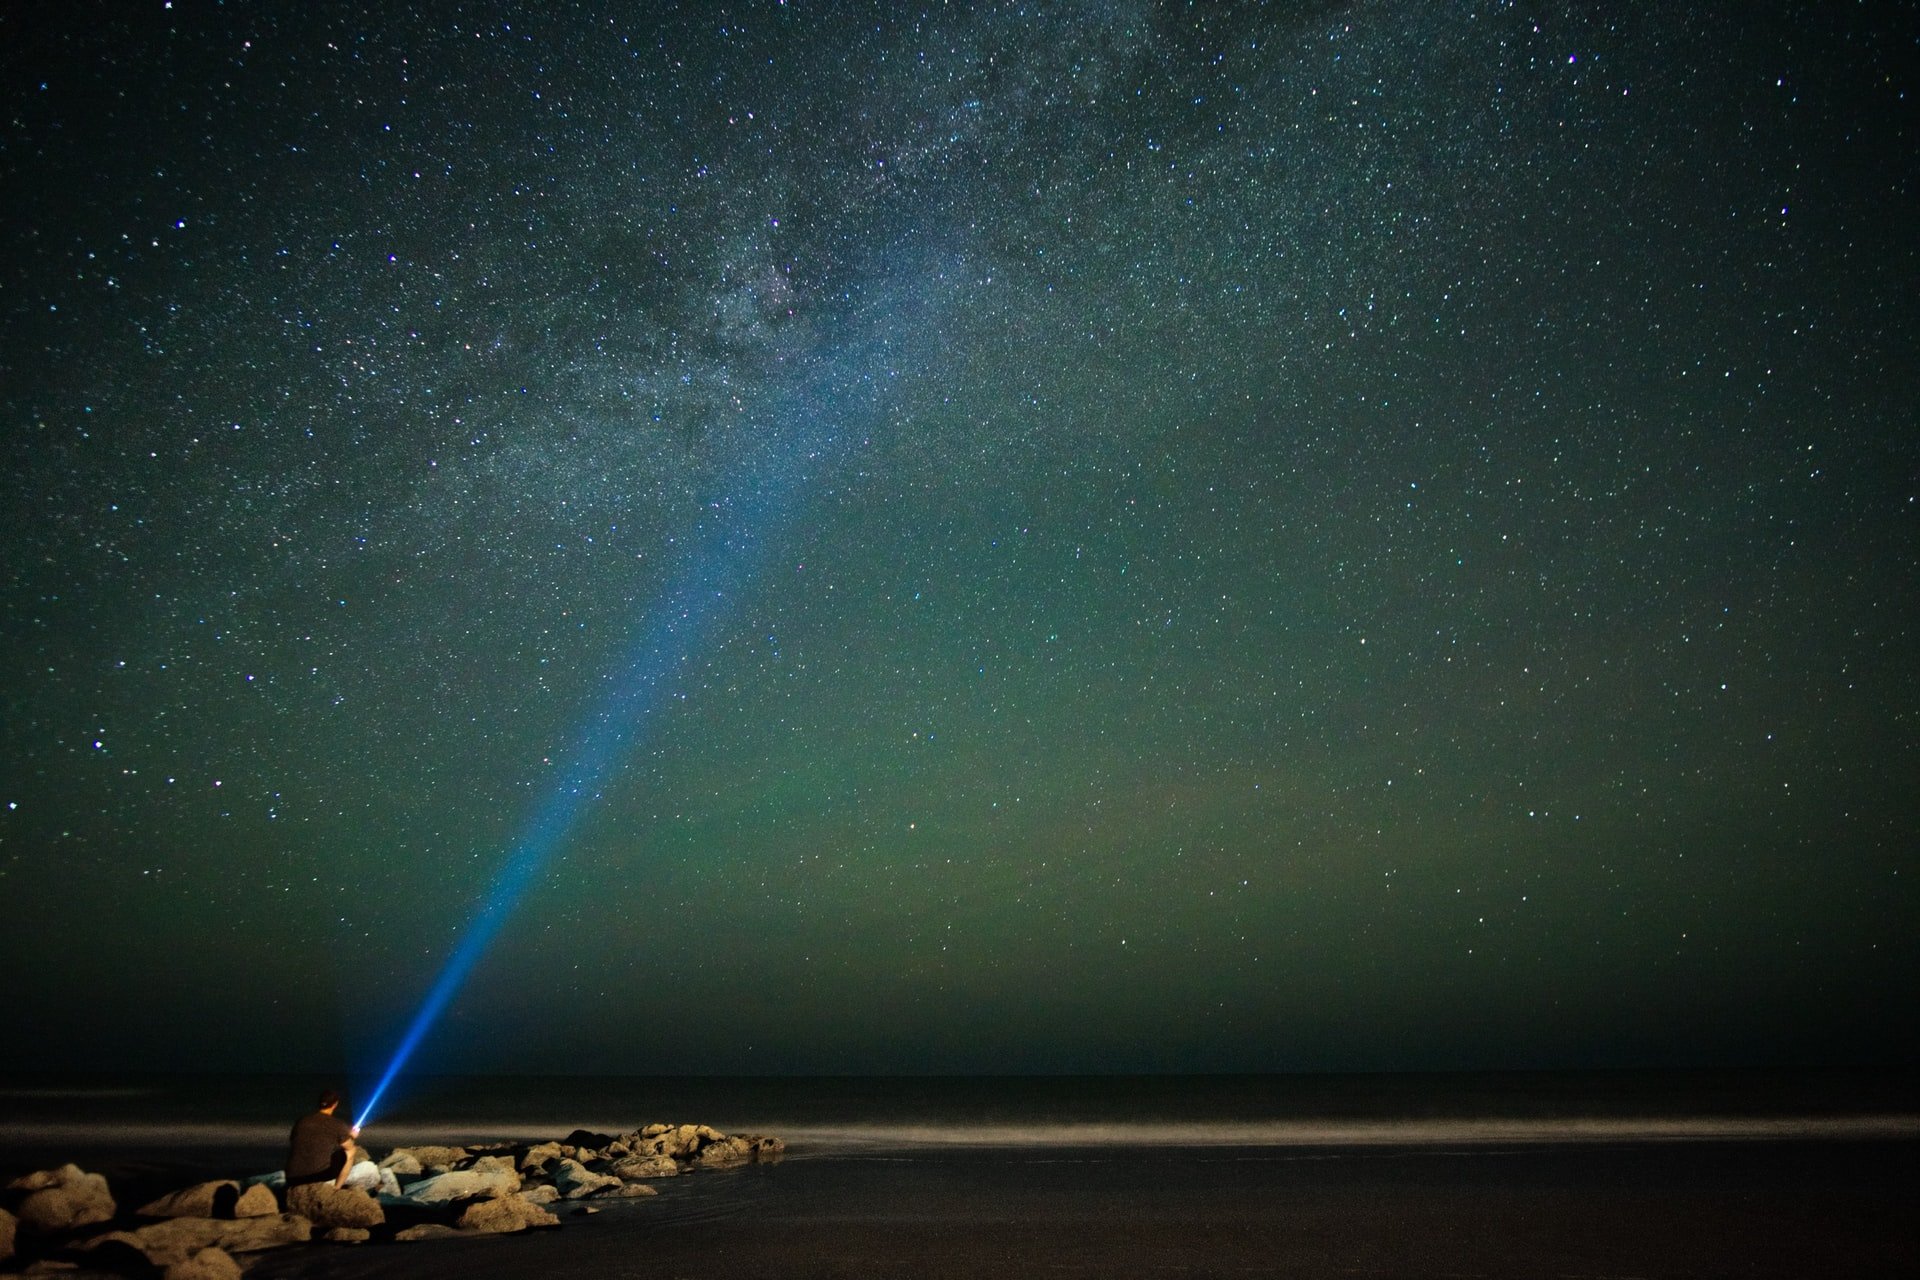 man-with-flashlight-by-the-sea